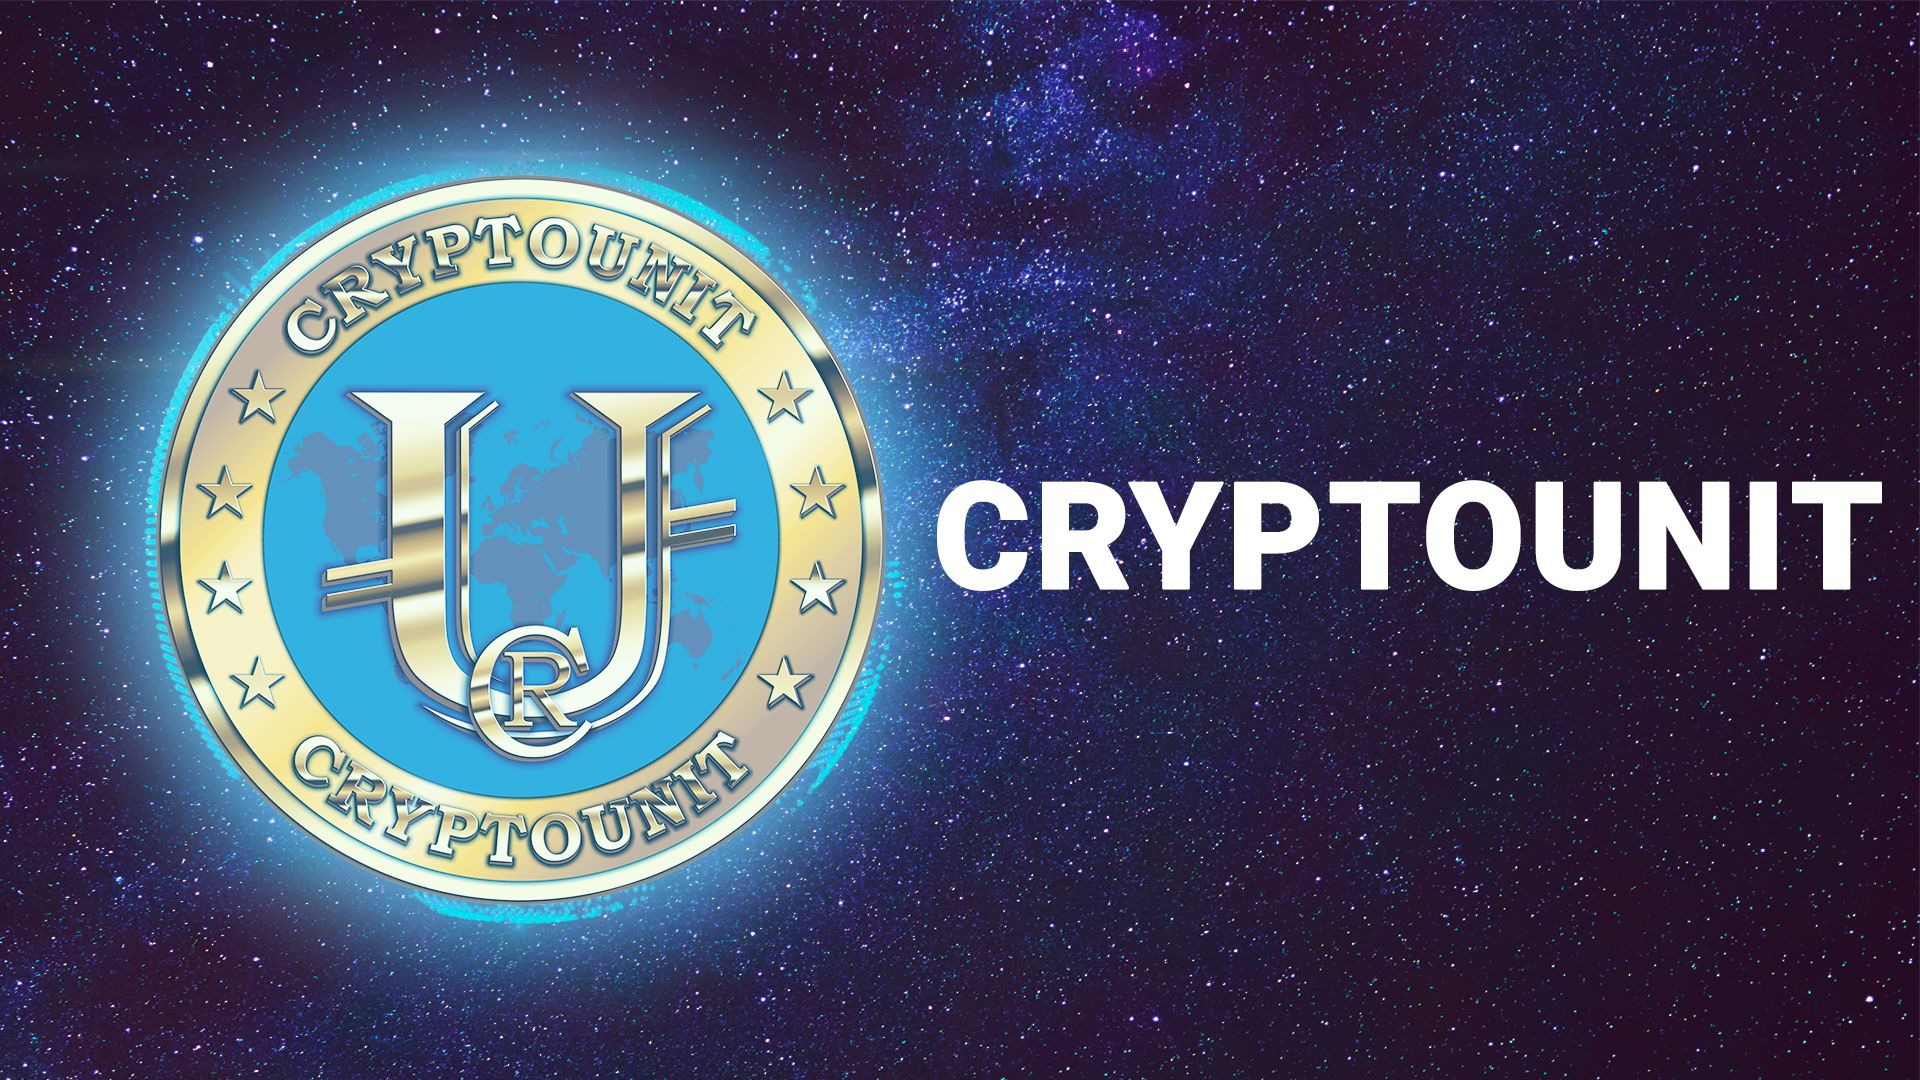 How to eradicate poverty forever: NEEW and the CryptoUnit program